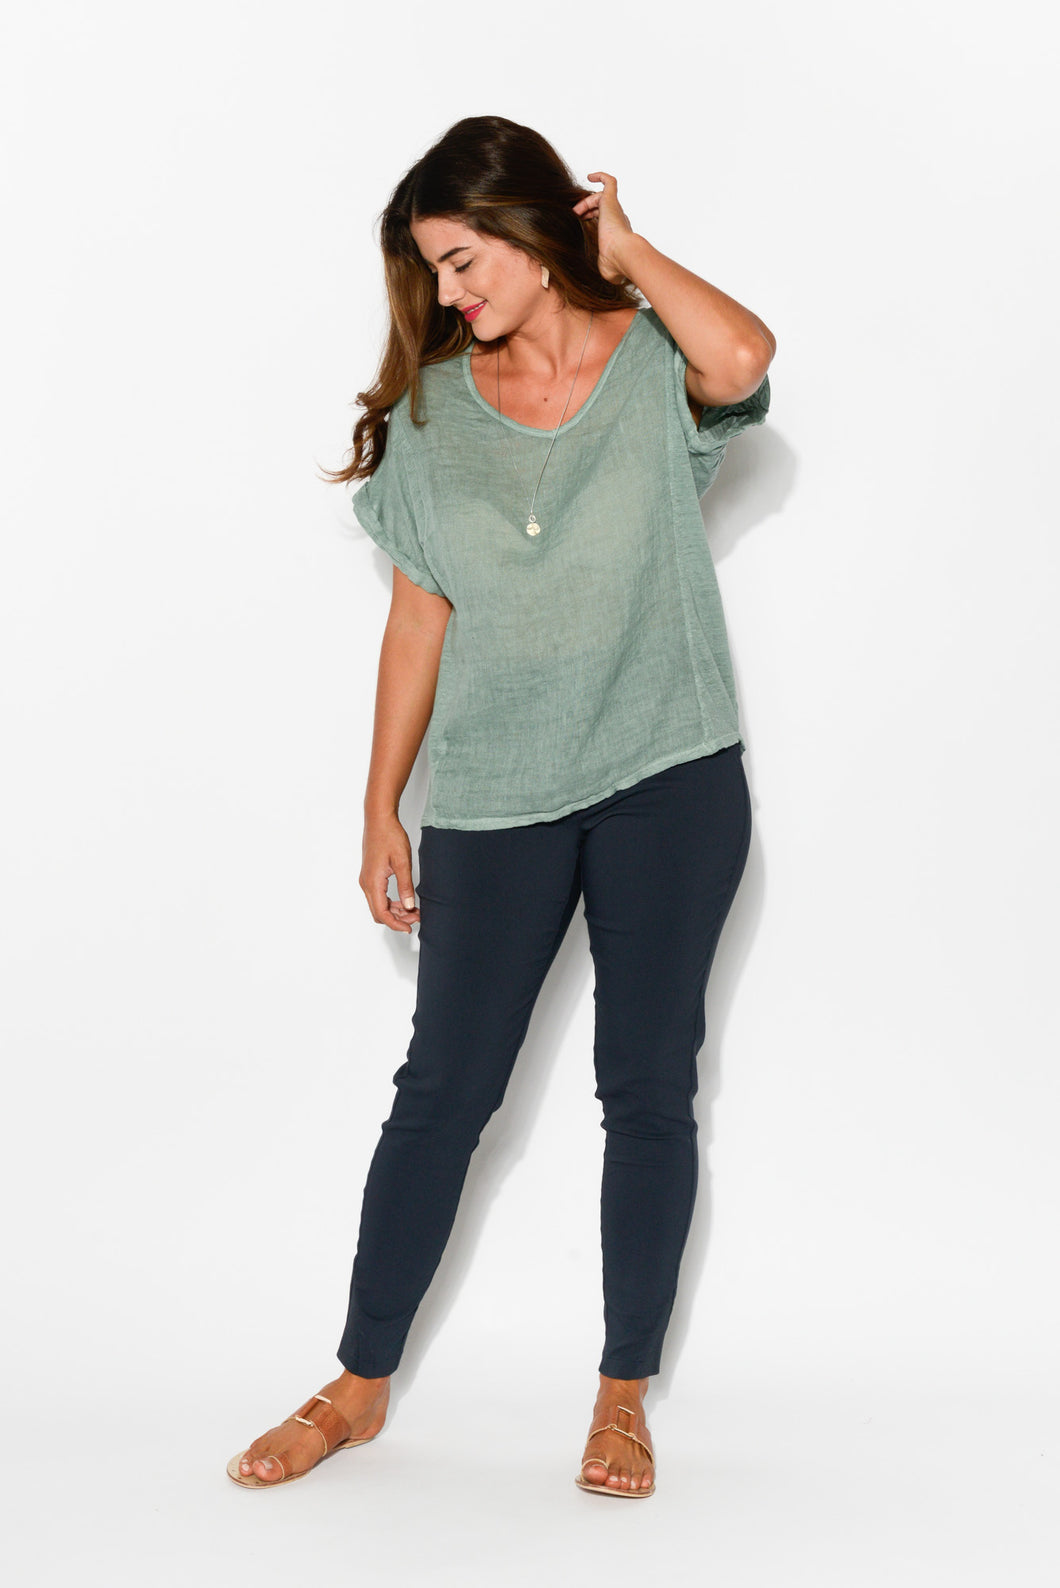 Anna Sea Green Linen Tee - Blue Bungalow